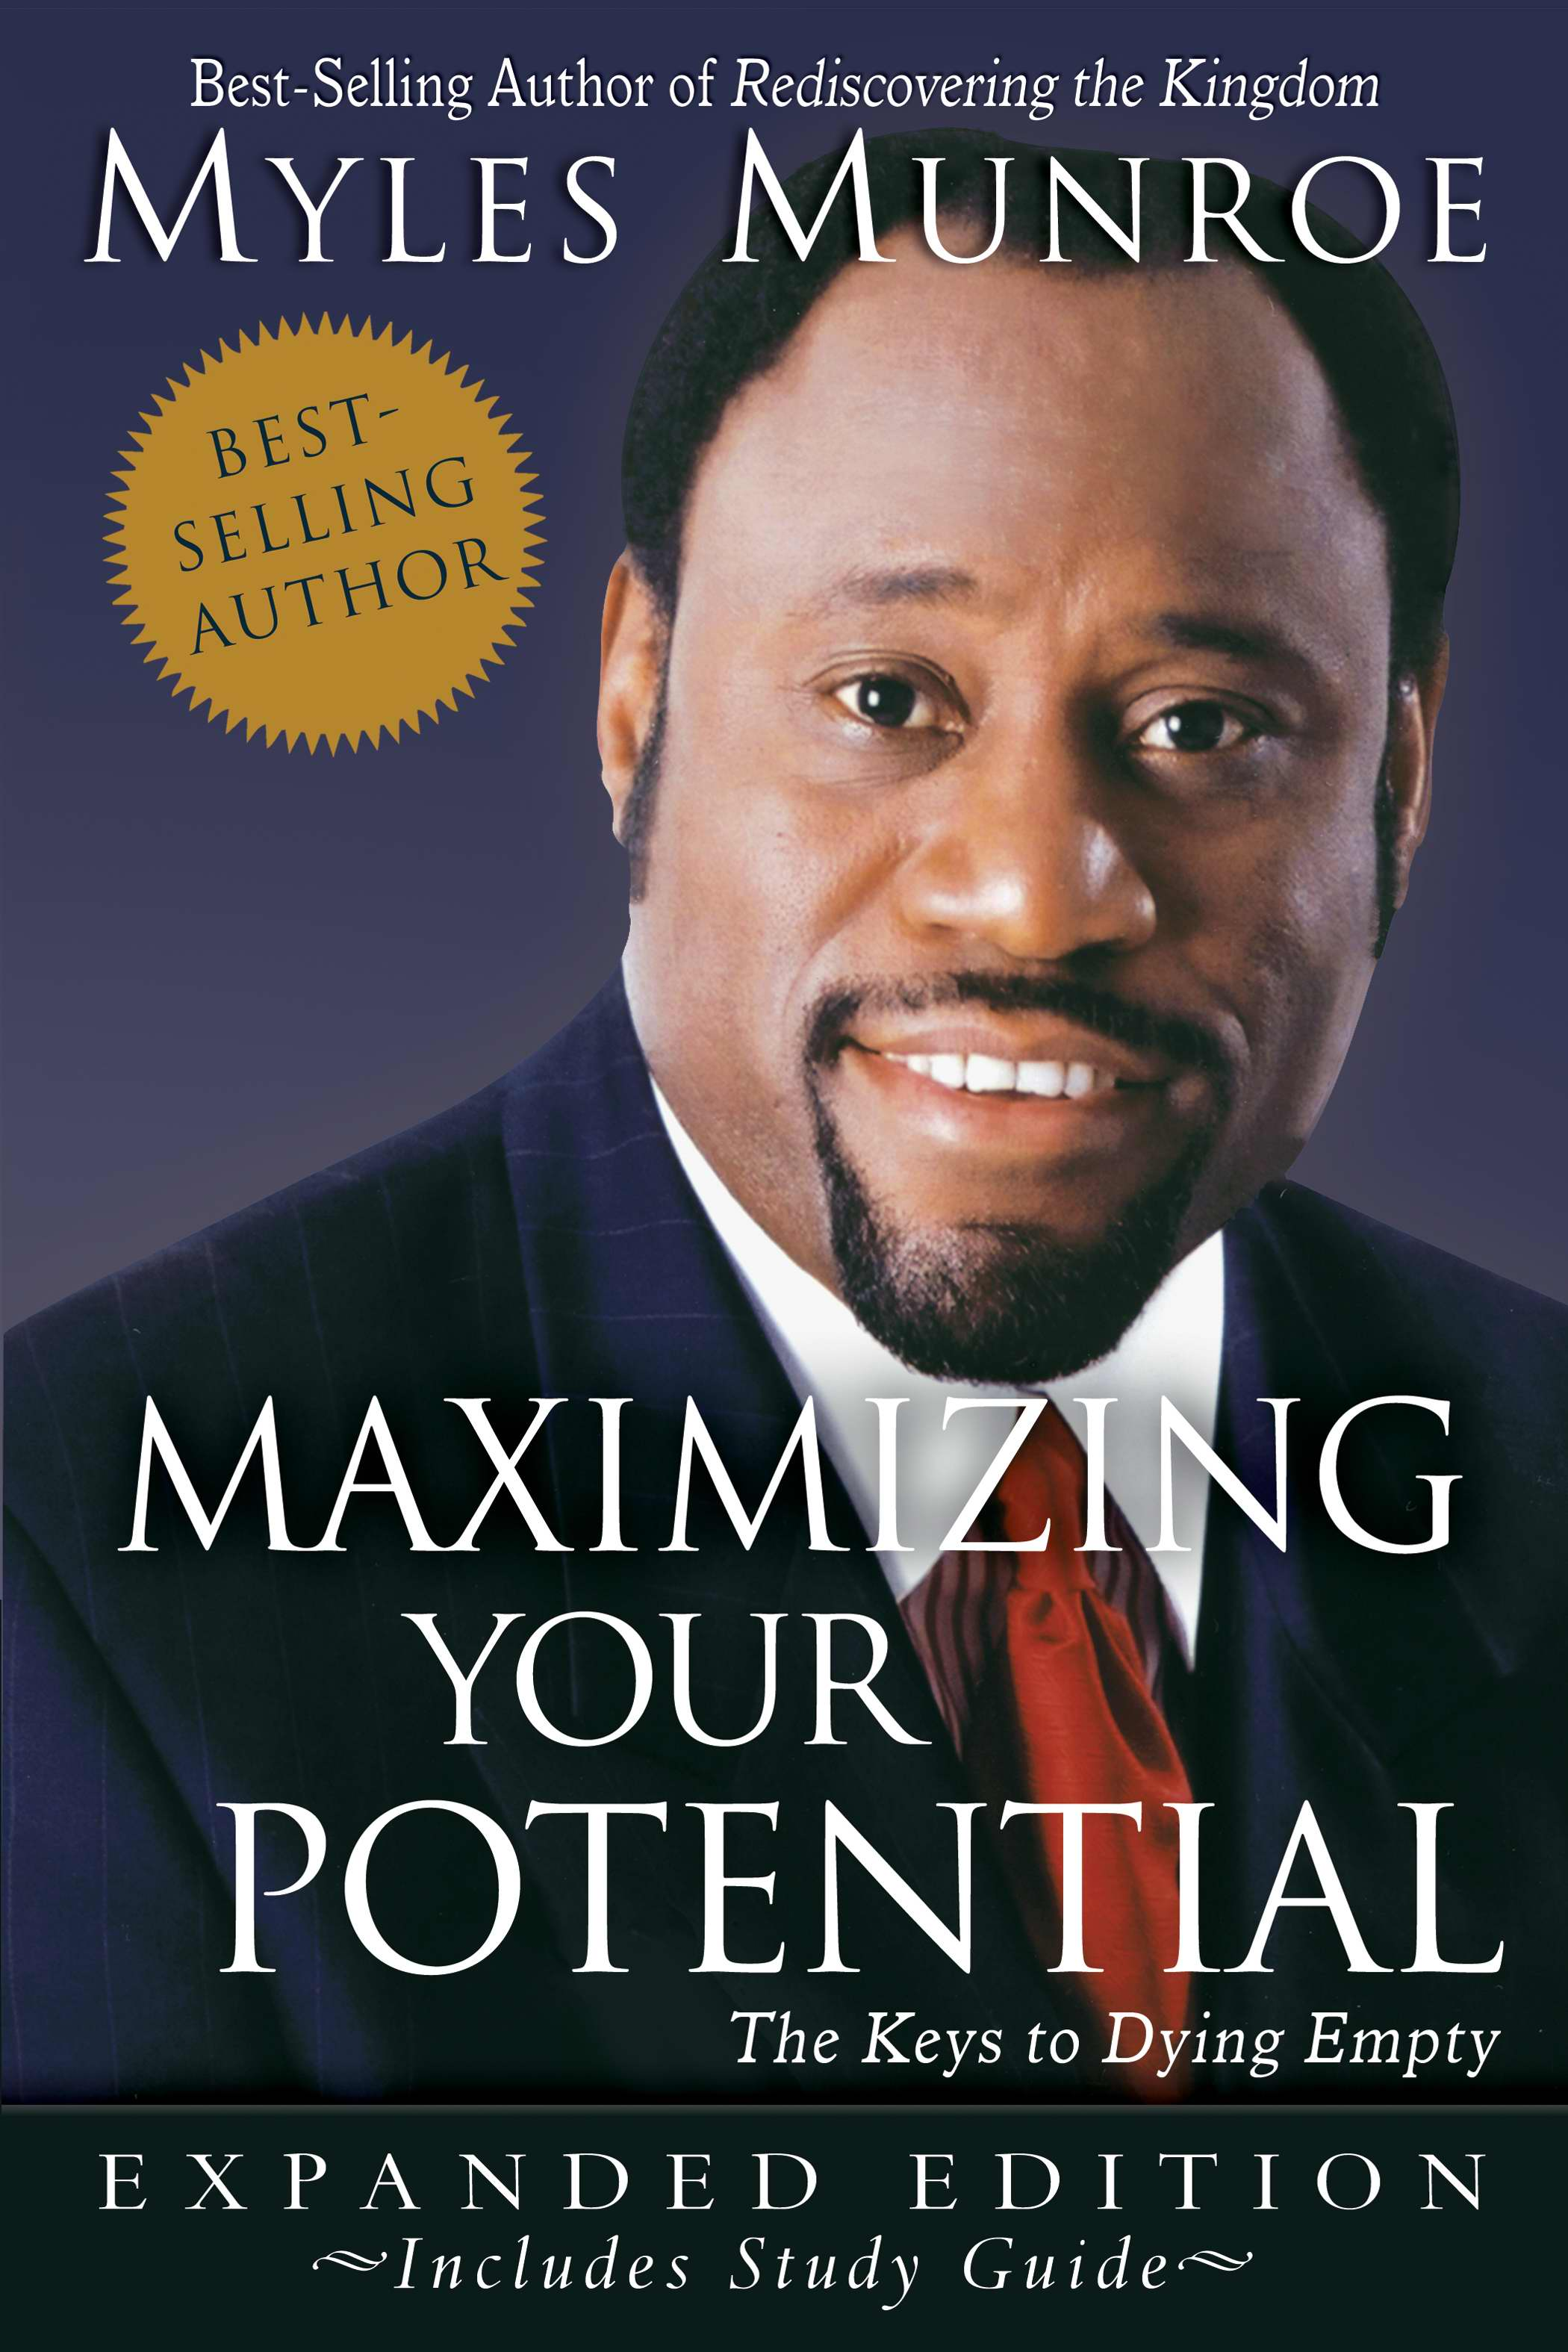 myles munroe book beginning and end